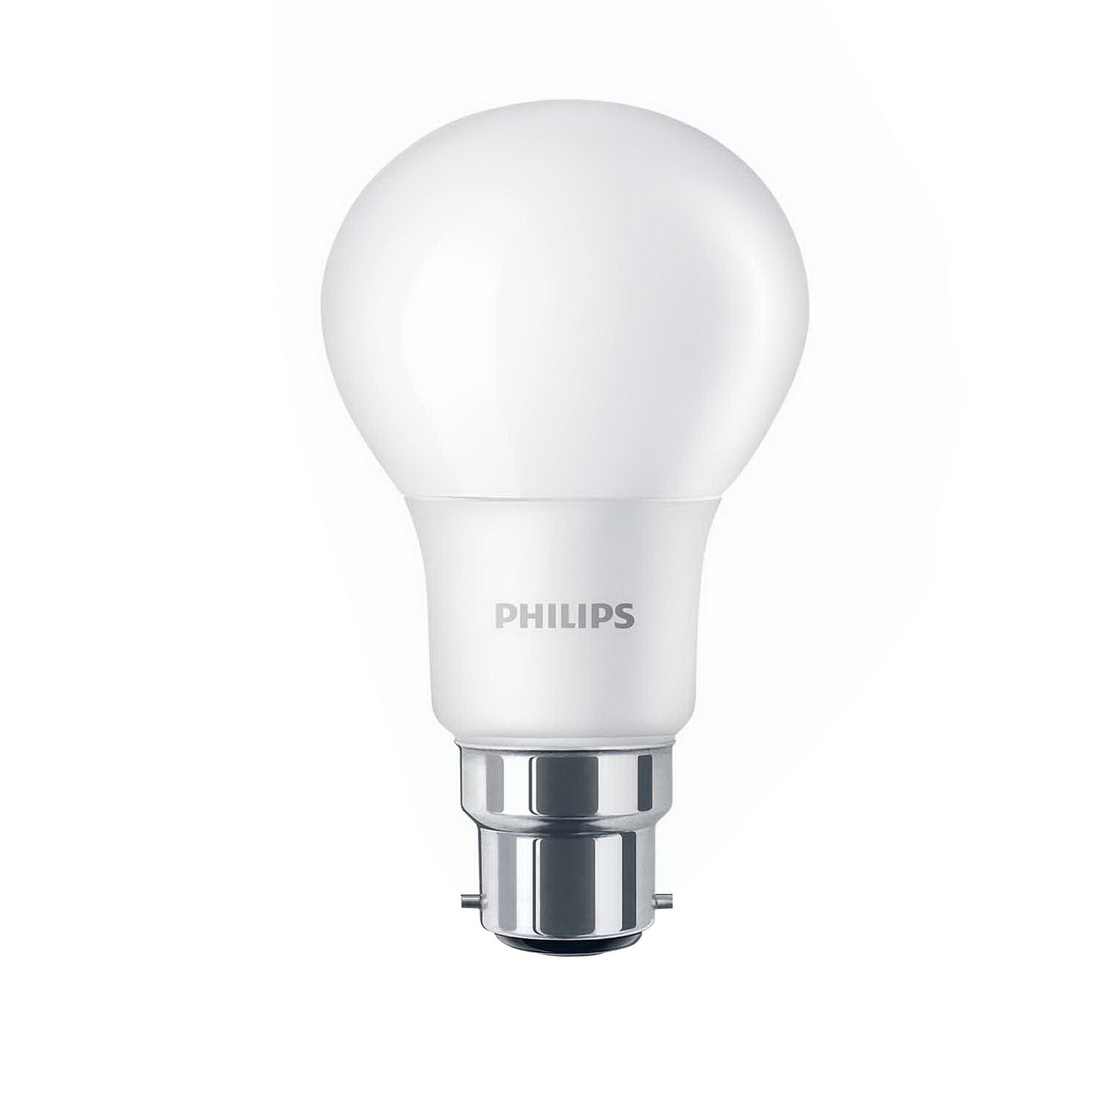 Ezi Living 10W 1020lm B22 6500K Generation 8 A60 Non-Dimmable LED Bulb Cool Daylight